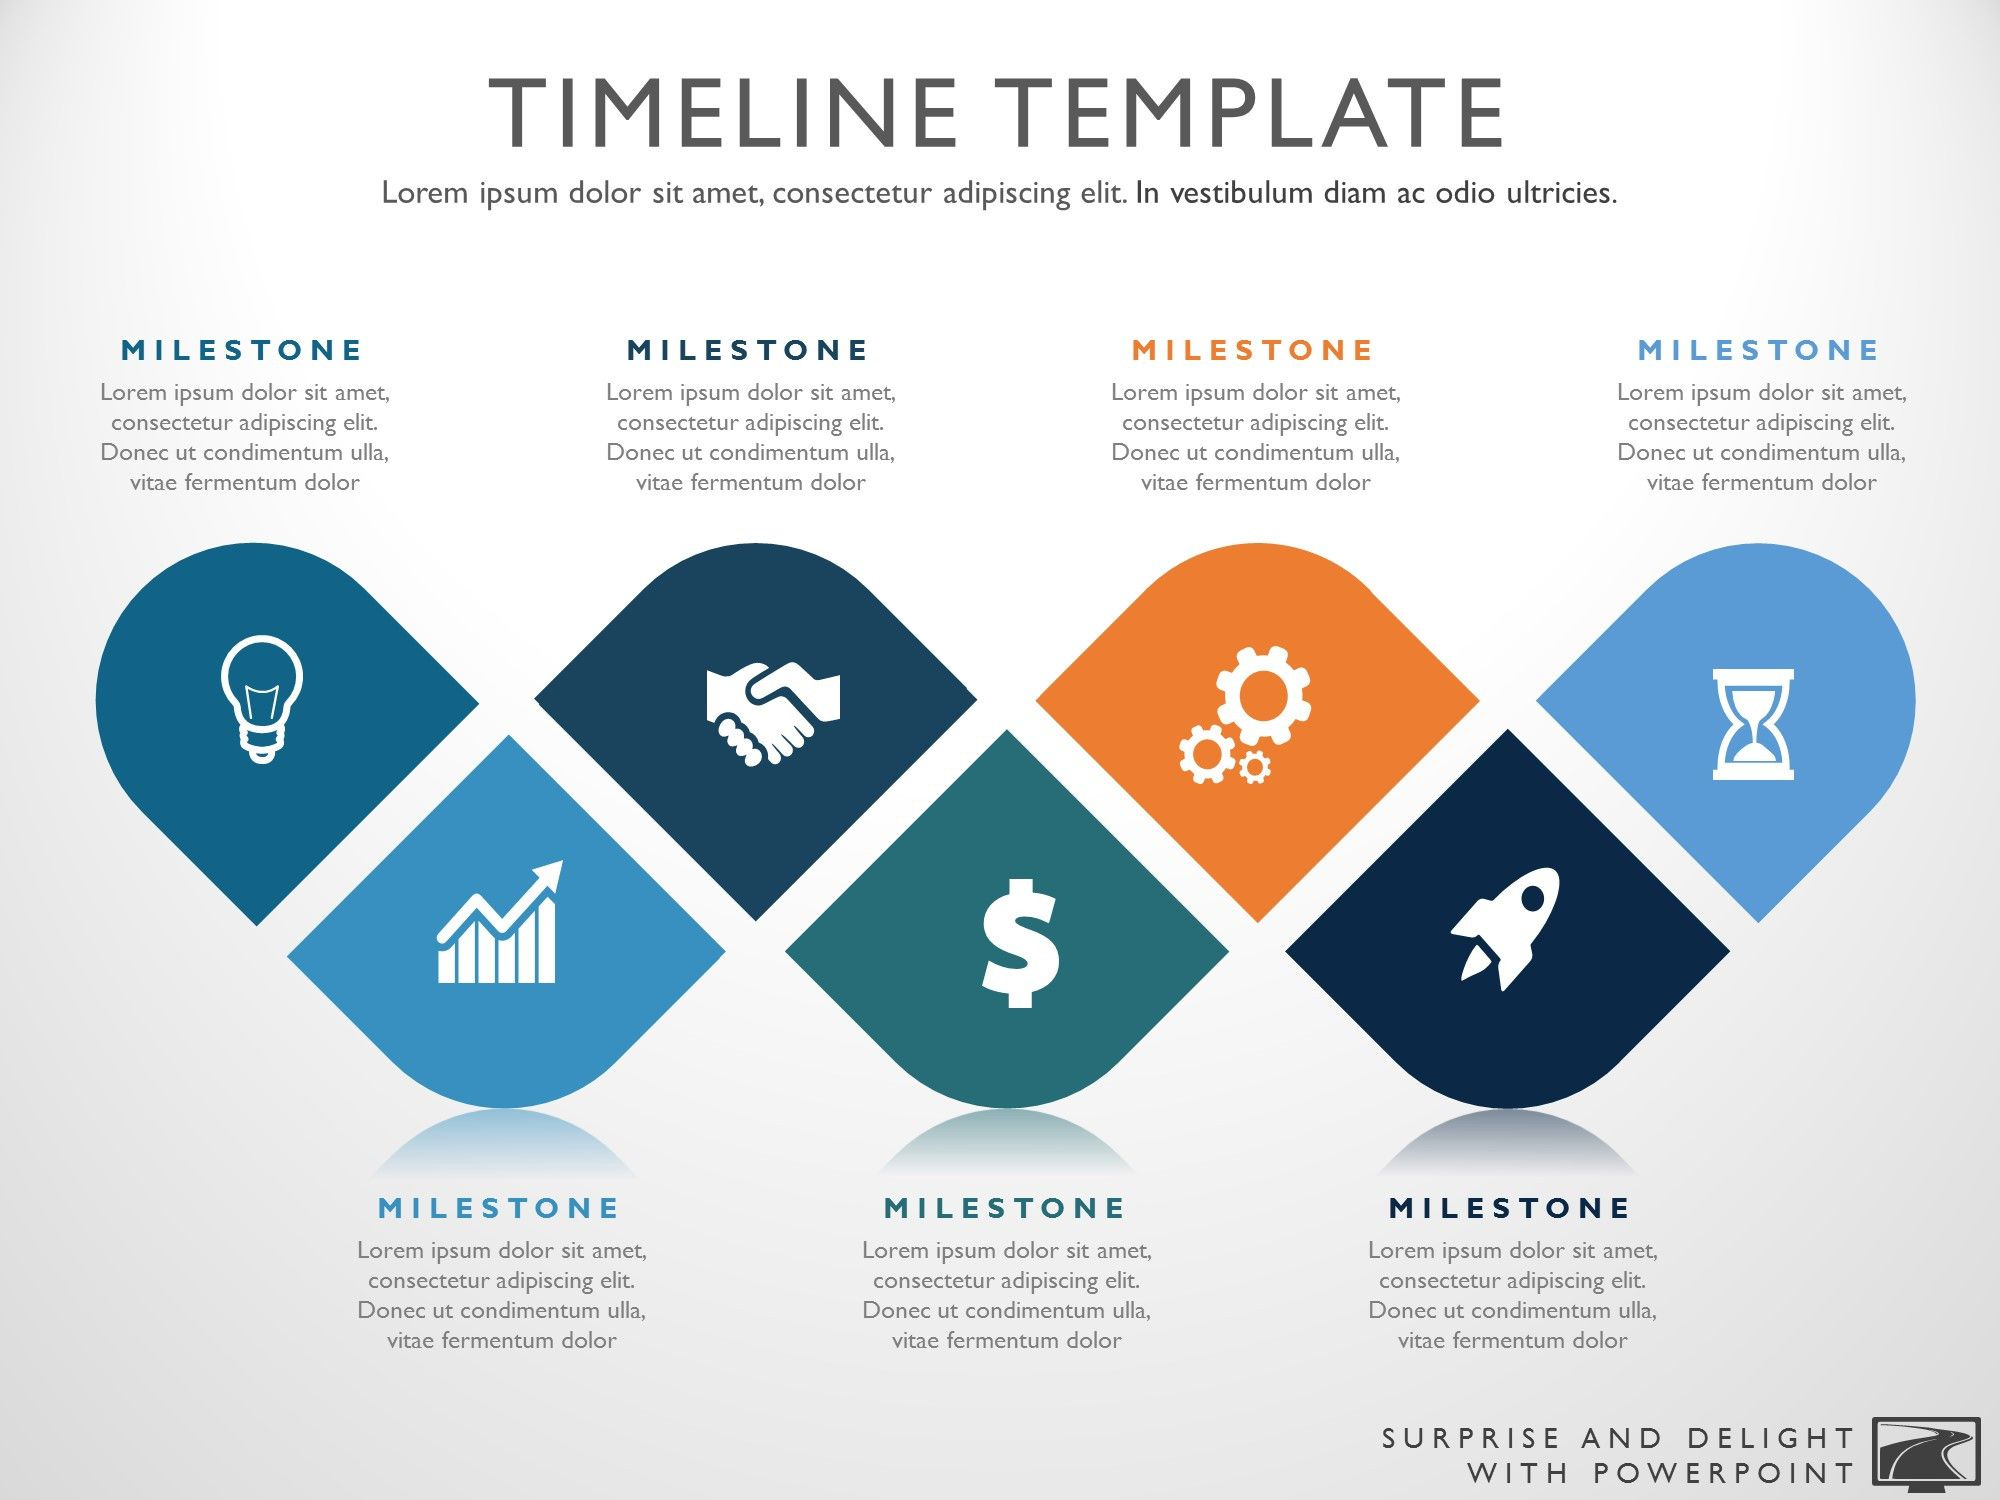 Timeline Template My Product Roadmap Web Design Pinterest - Roadmap timeline template ppt